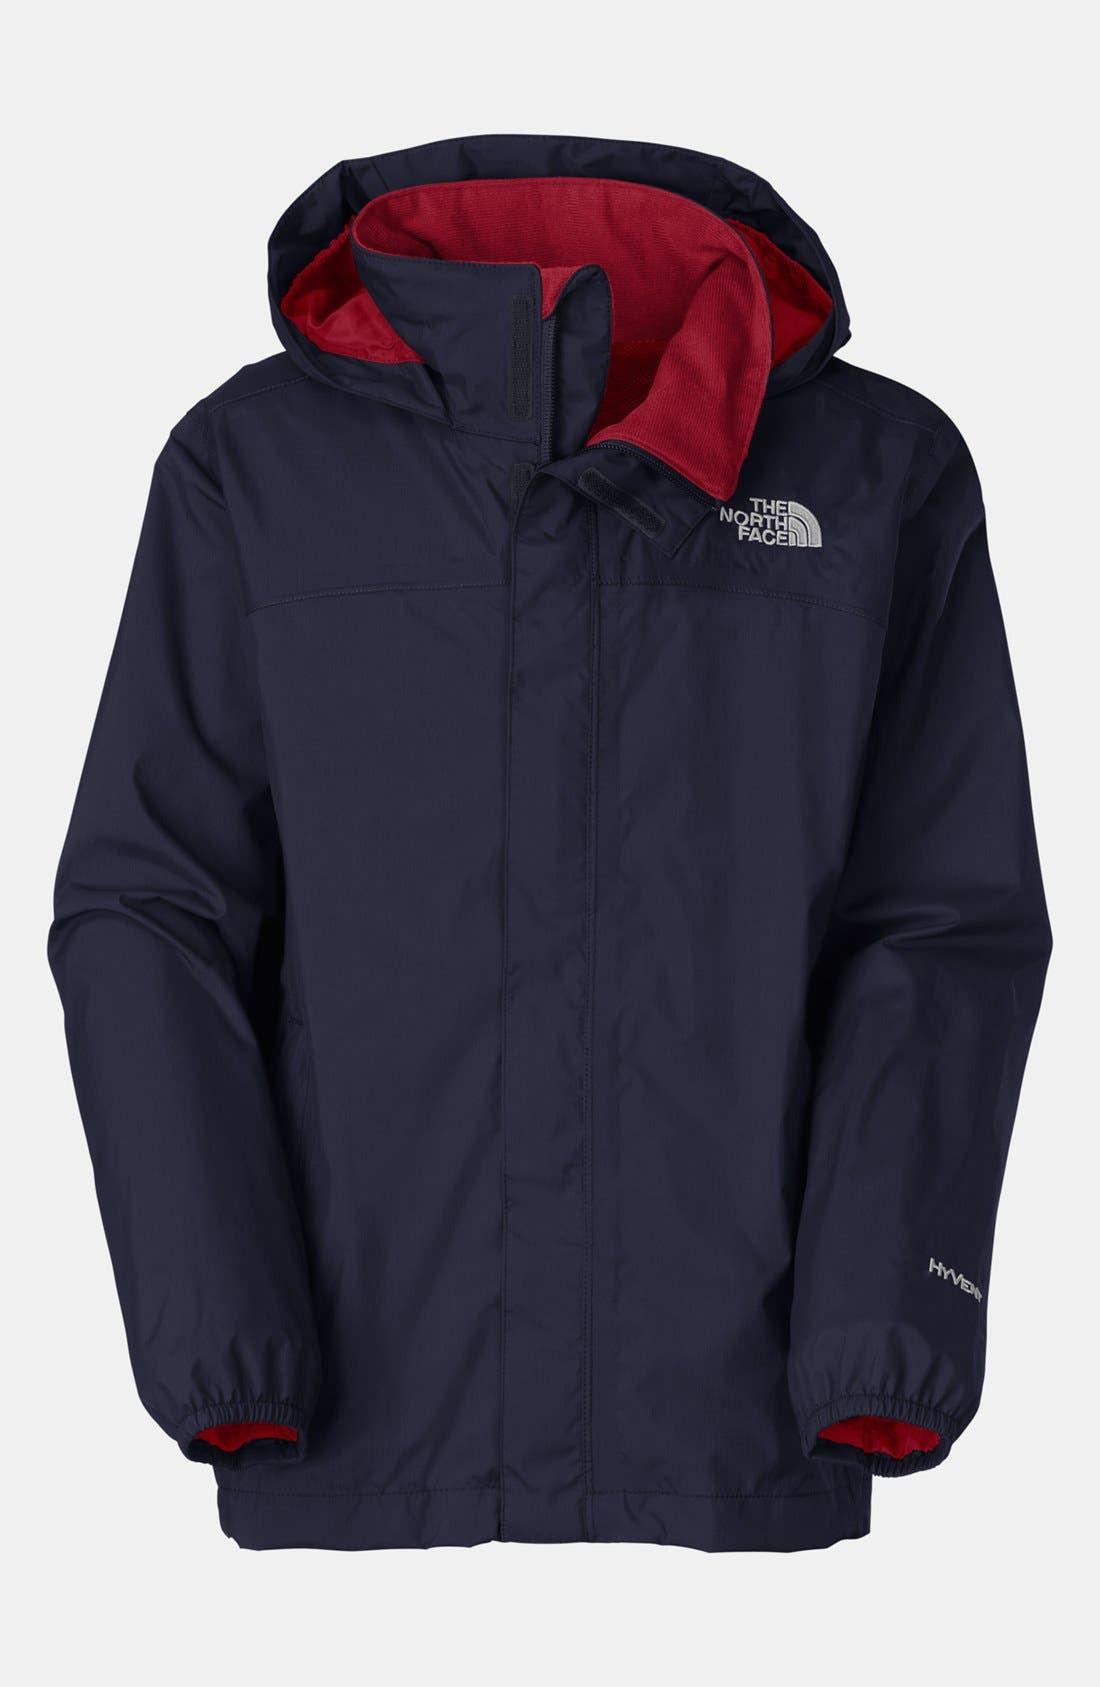 Main Image - The North Face 'Resolve' Jacket (Little Boys)